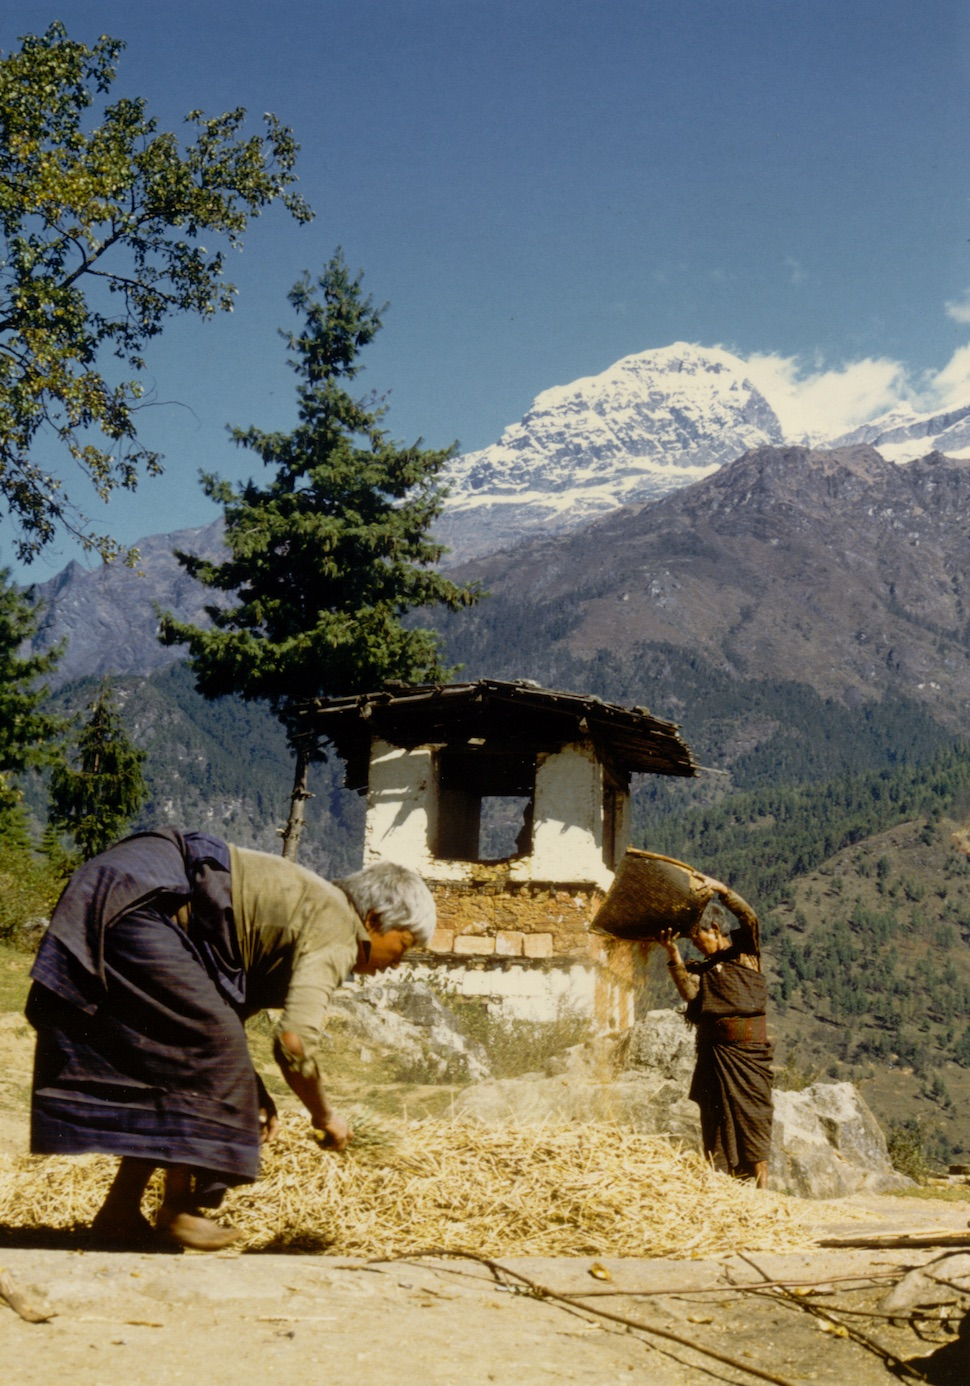 Southern Bhutanese women winnowing grain in the cooler valleys of the north.  The warmer southern hills and plains are highly fertile and have provided most of Bhutan's food.